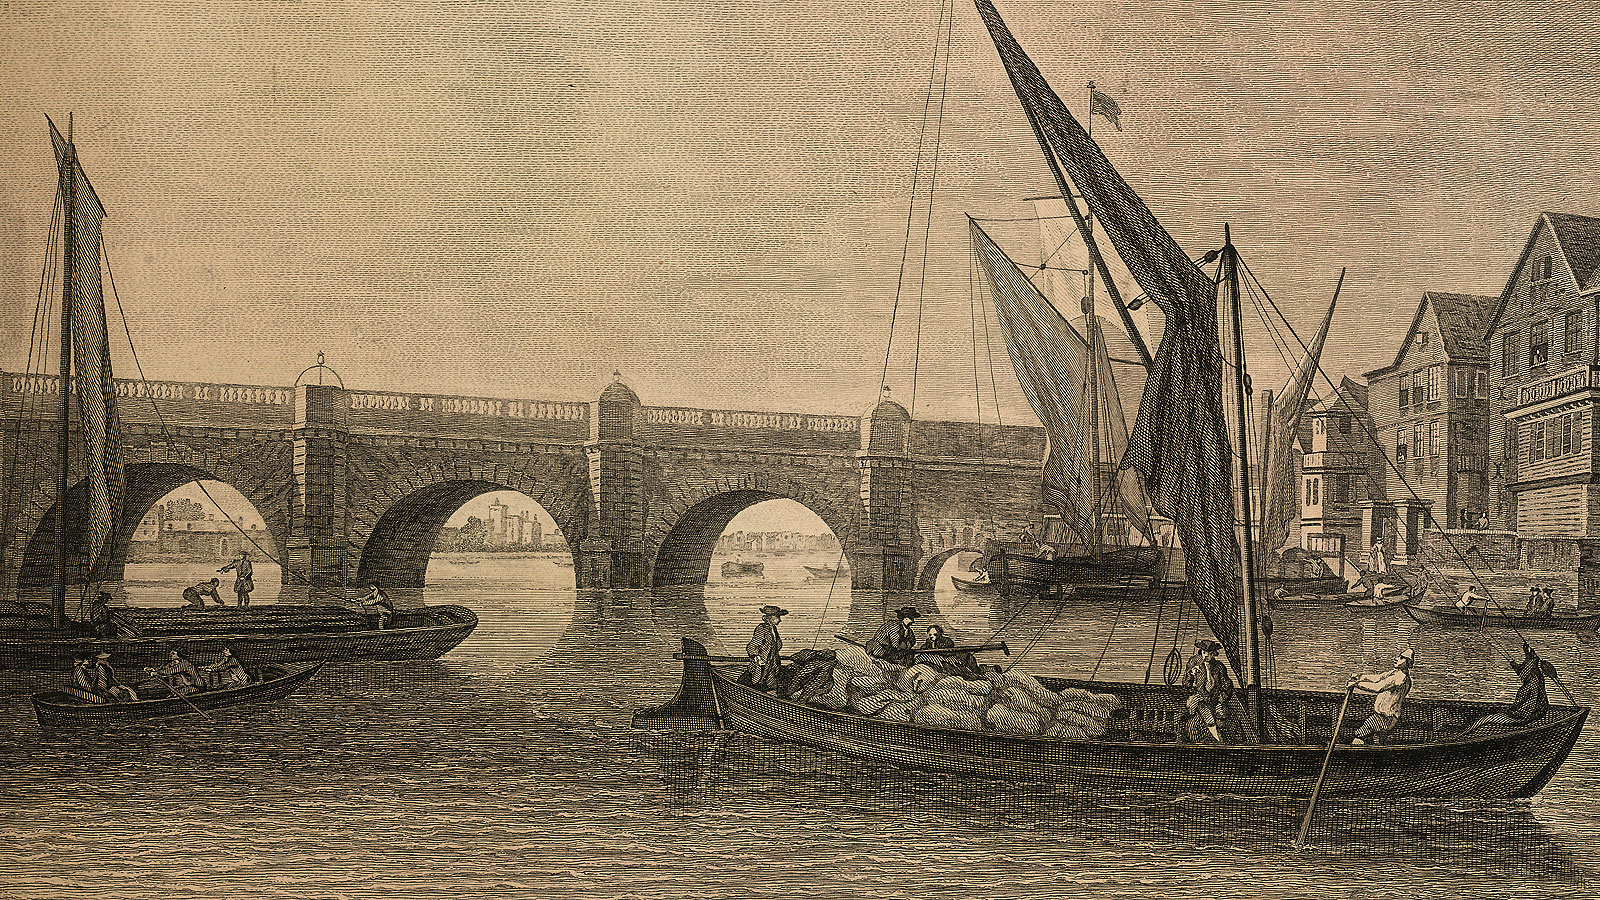 'Composed upon Westminster Bridge'